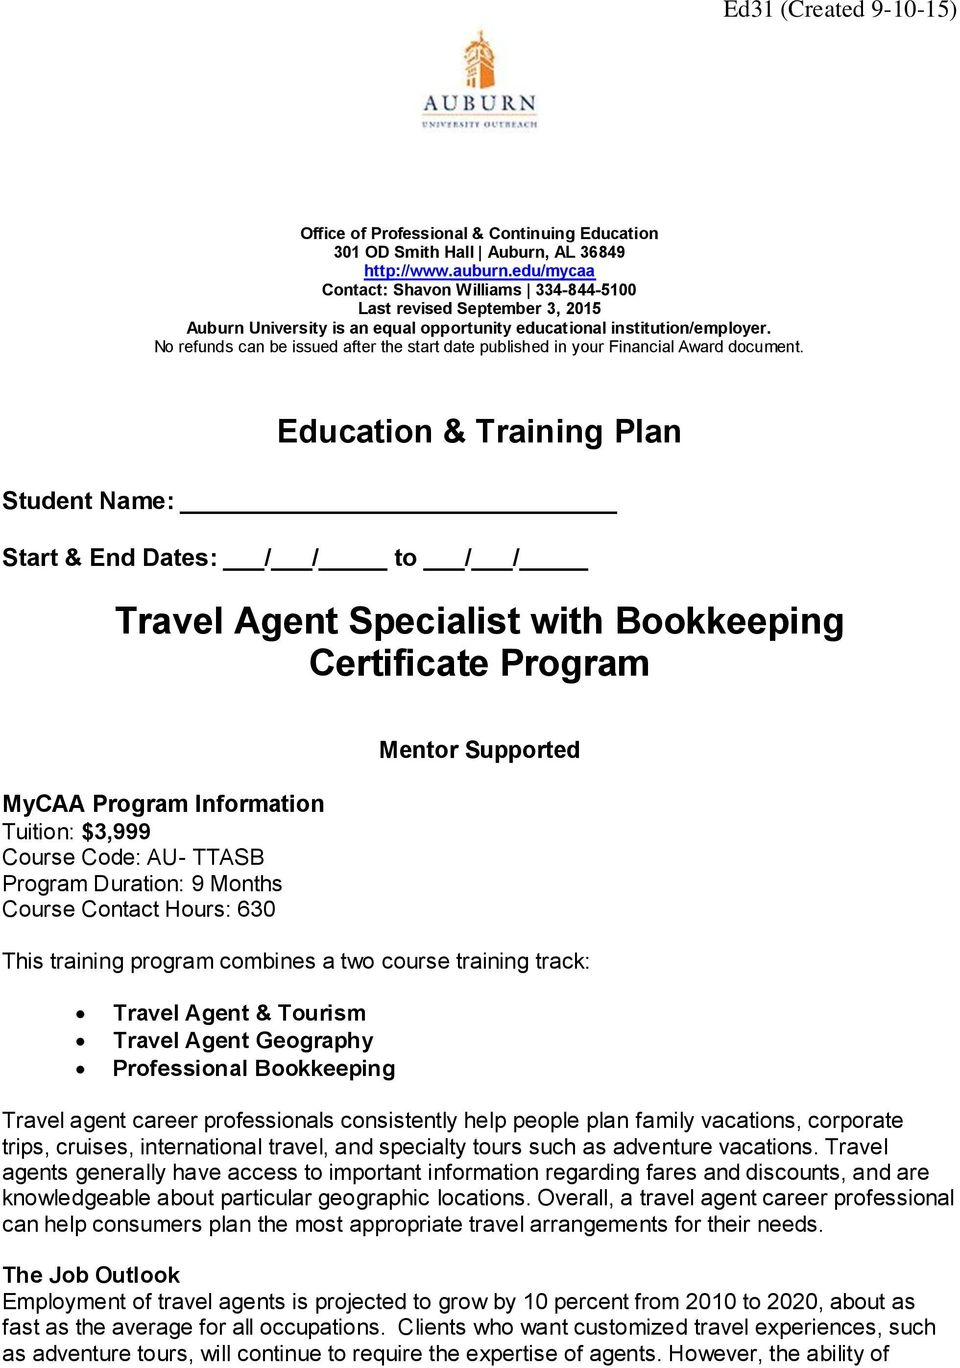 Travel Agent Specialist with Bookkeeping Certificate Program - PDF